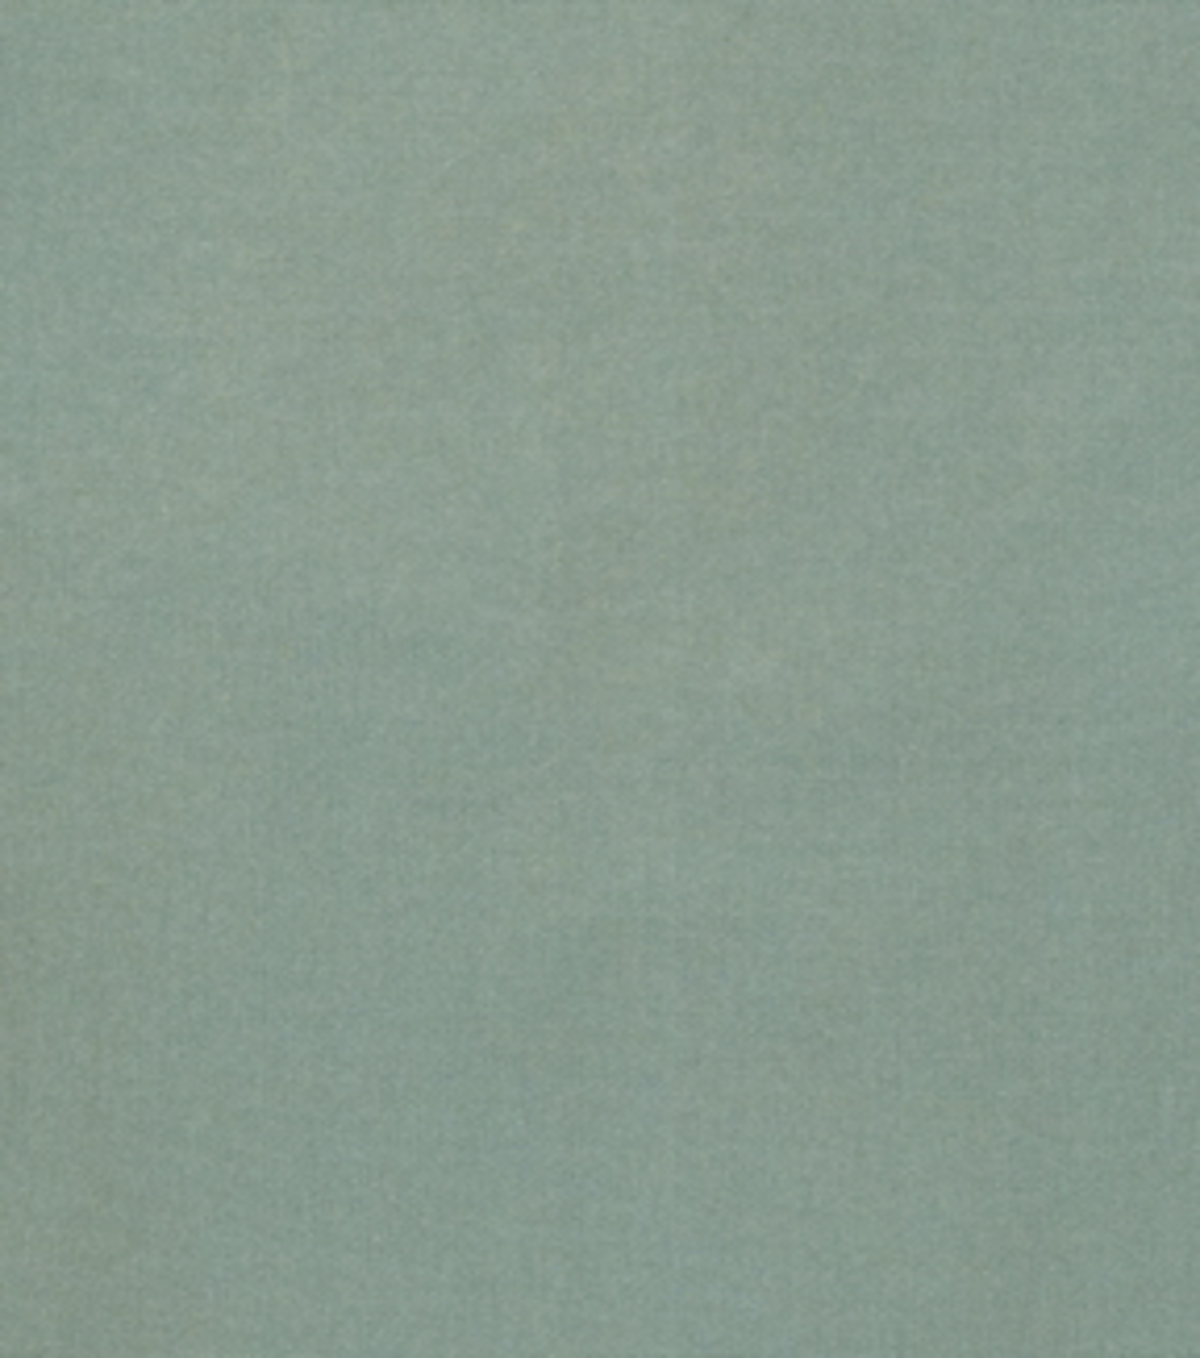 Home Decor 8\u0022x8\u0022 Fabric Swatch-Signature Series Ultra Taffeta Duck Egg